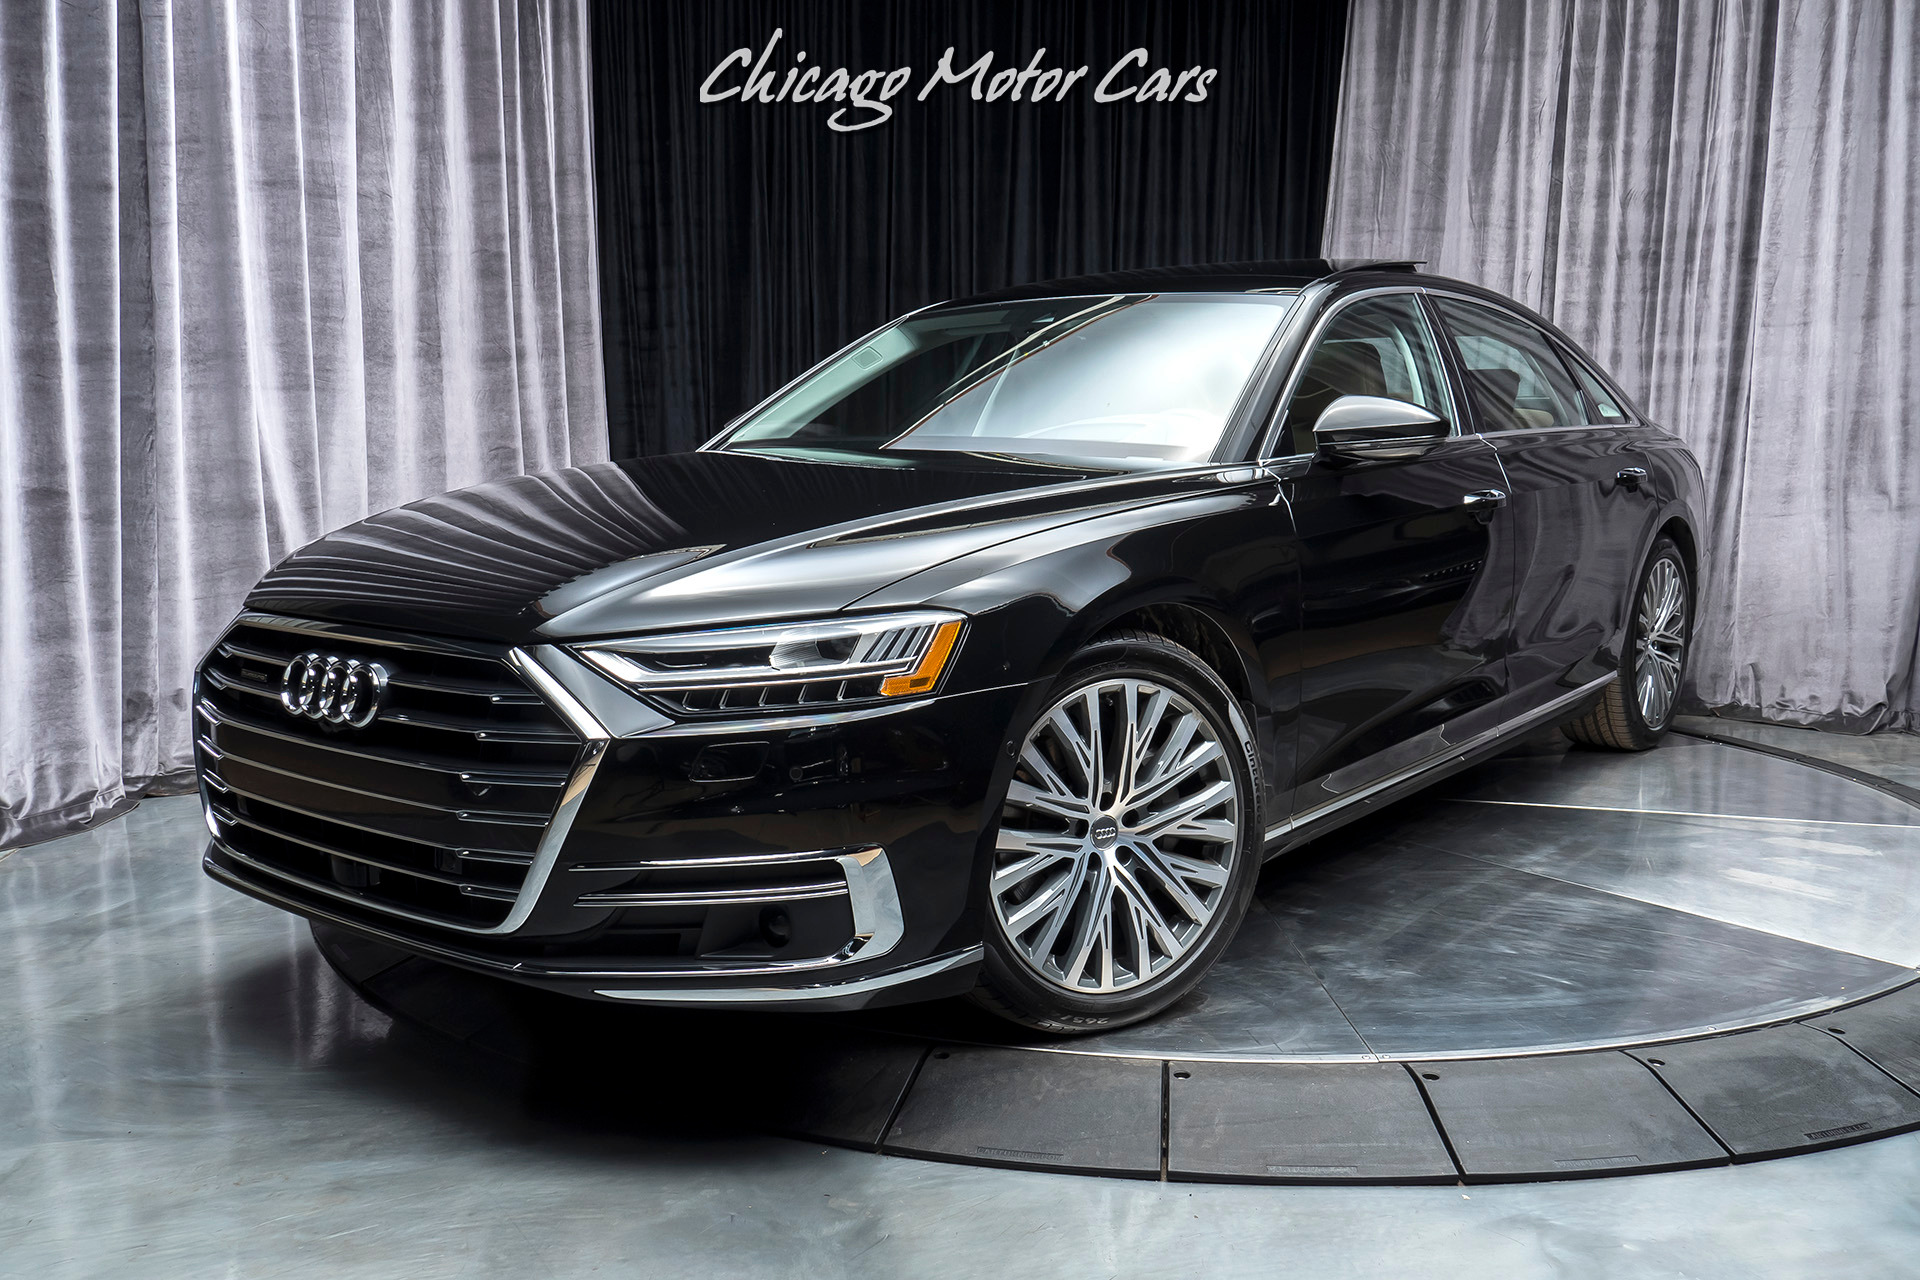 Used 2019 Audi A8 L 3 0t Quattro Sedan Msrp 99k Executive Package For Sale Special Pricing Chicago Motor Cars Stock 16722